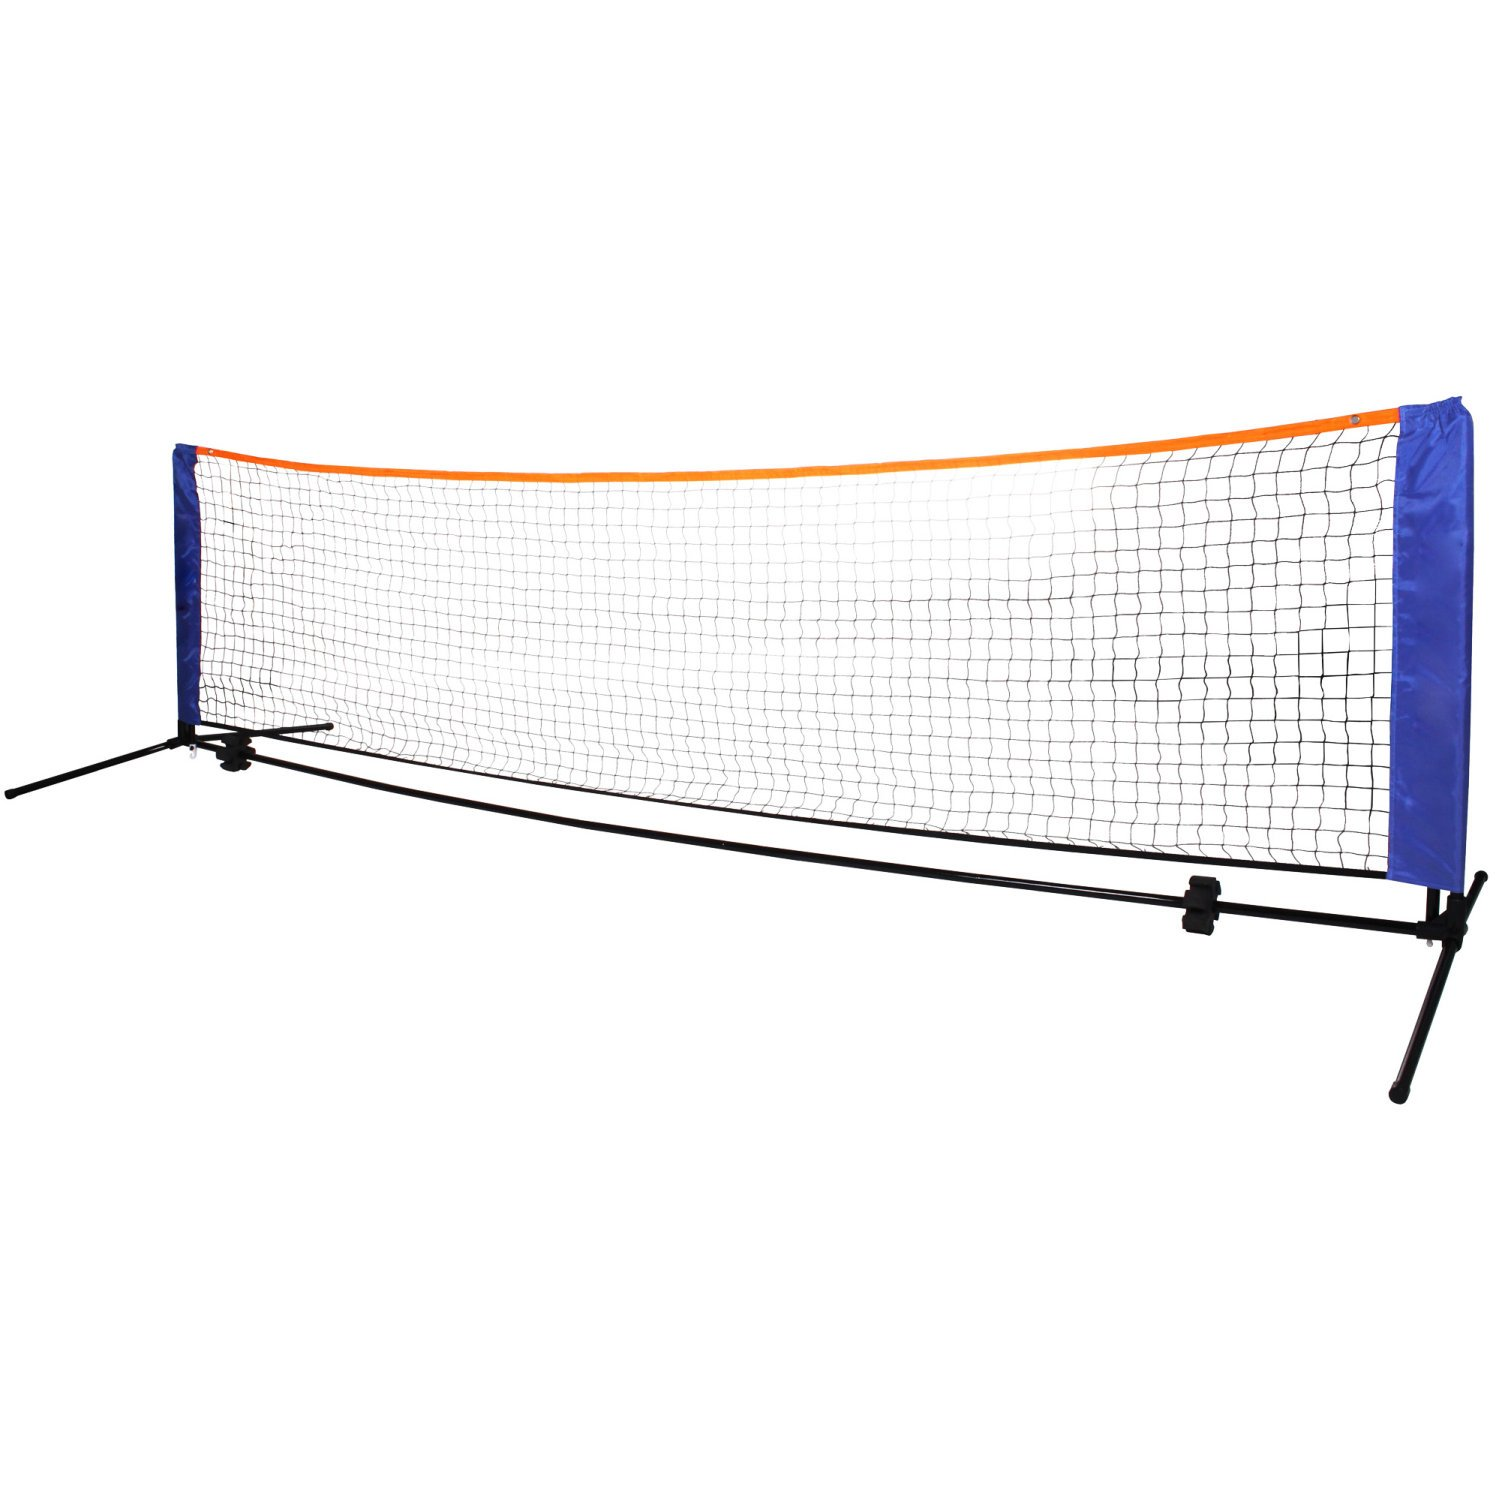 Small 3m Adjustable Foldable Badminton Tennis Volleyball